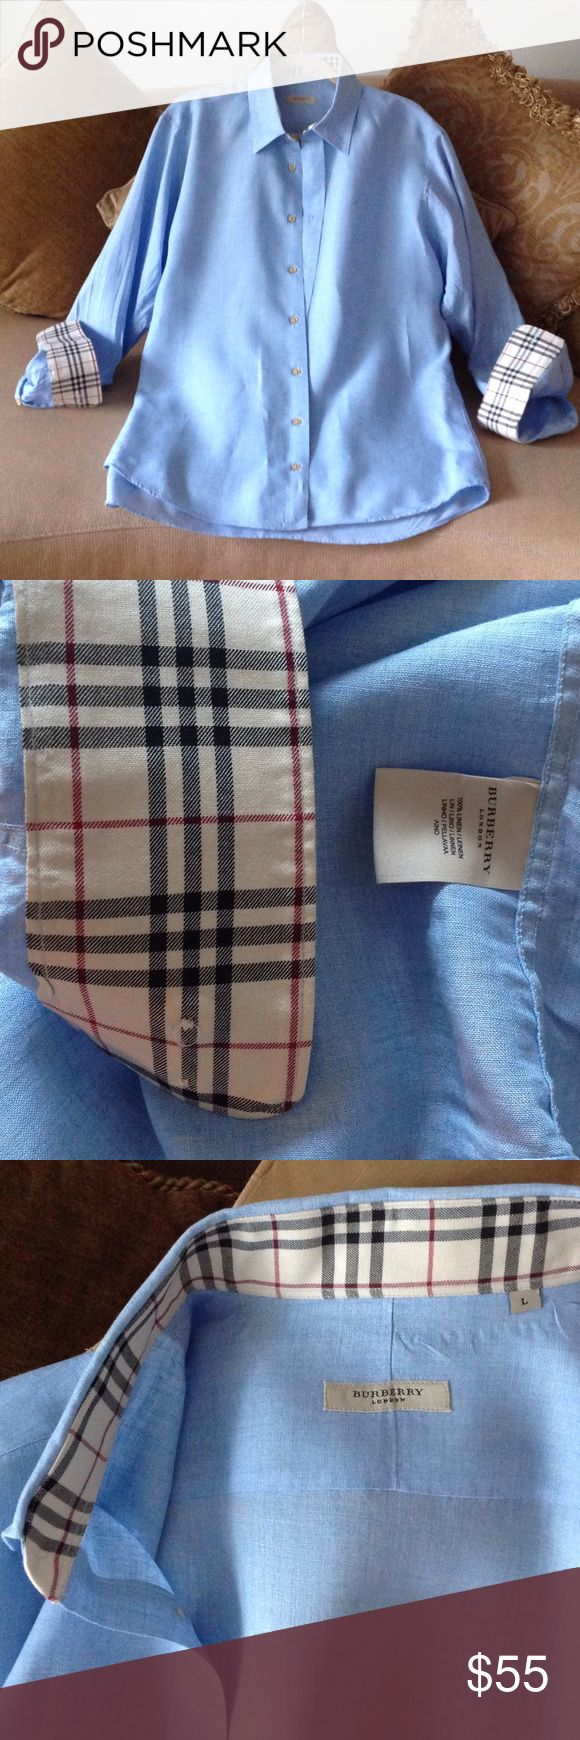 'Authentic Burberry of London' - Men's Shirt Sky Blue Men's Burberry Shirt in Size Large. It's 100% Linen. The Burberry plaid is the perfect accent next to the blue, with the Burberry logo stitched on the front chest. This is in excellent condition and has been dry cleaned for your convenience! Burberry Shirts Casual Button Down Shirts